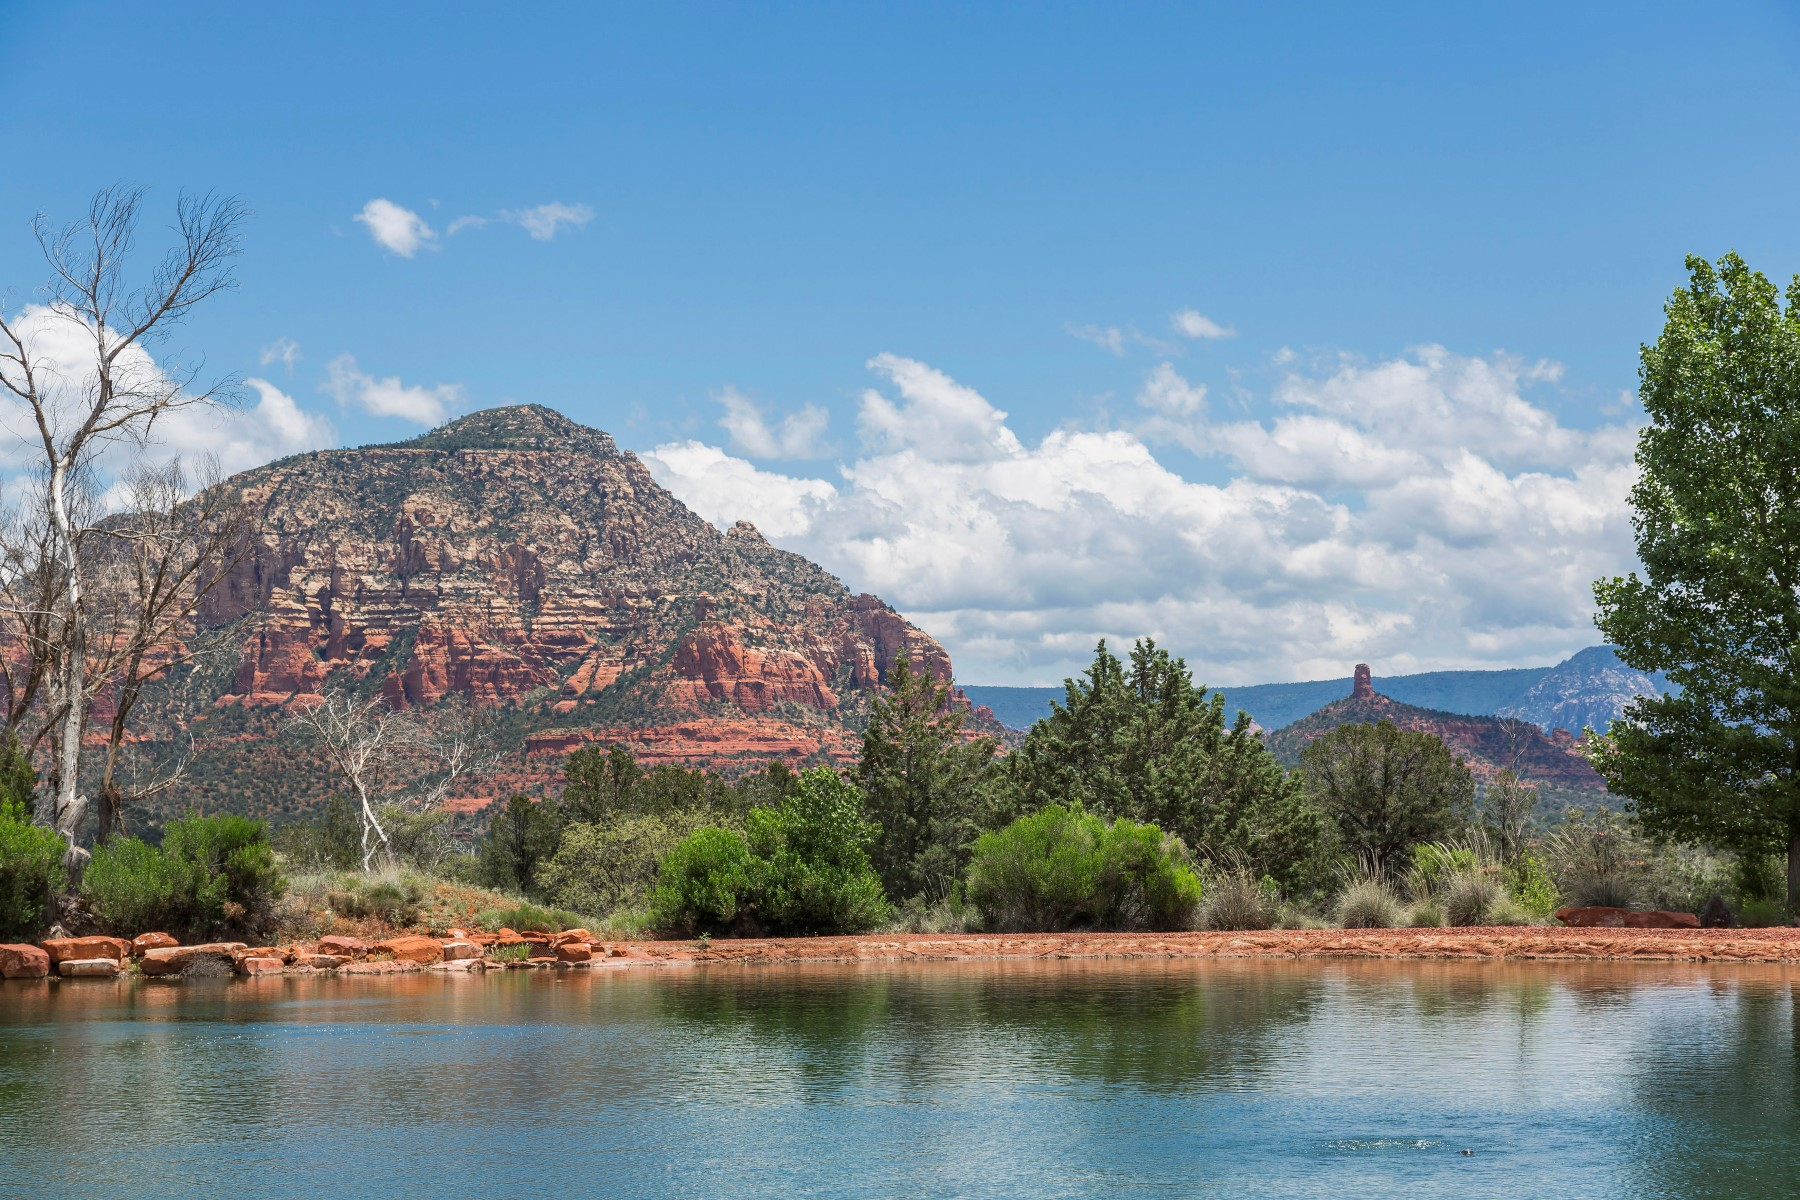 Land for Sale at Aerie Lot 22 - Central 2.17 acre lot with views of Sedona's red rocks. 90 Altair AVE 22 Sedona, Arizona, 86336 United States